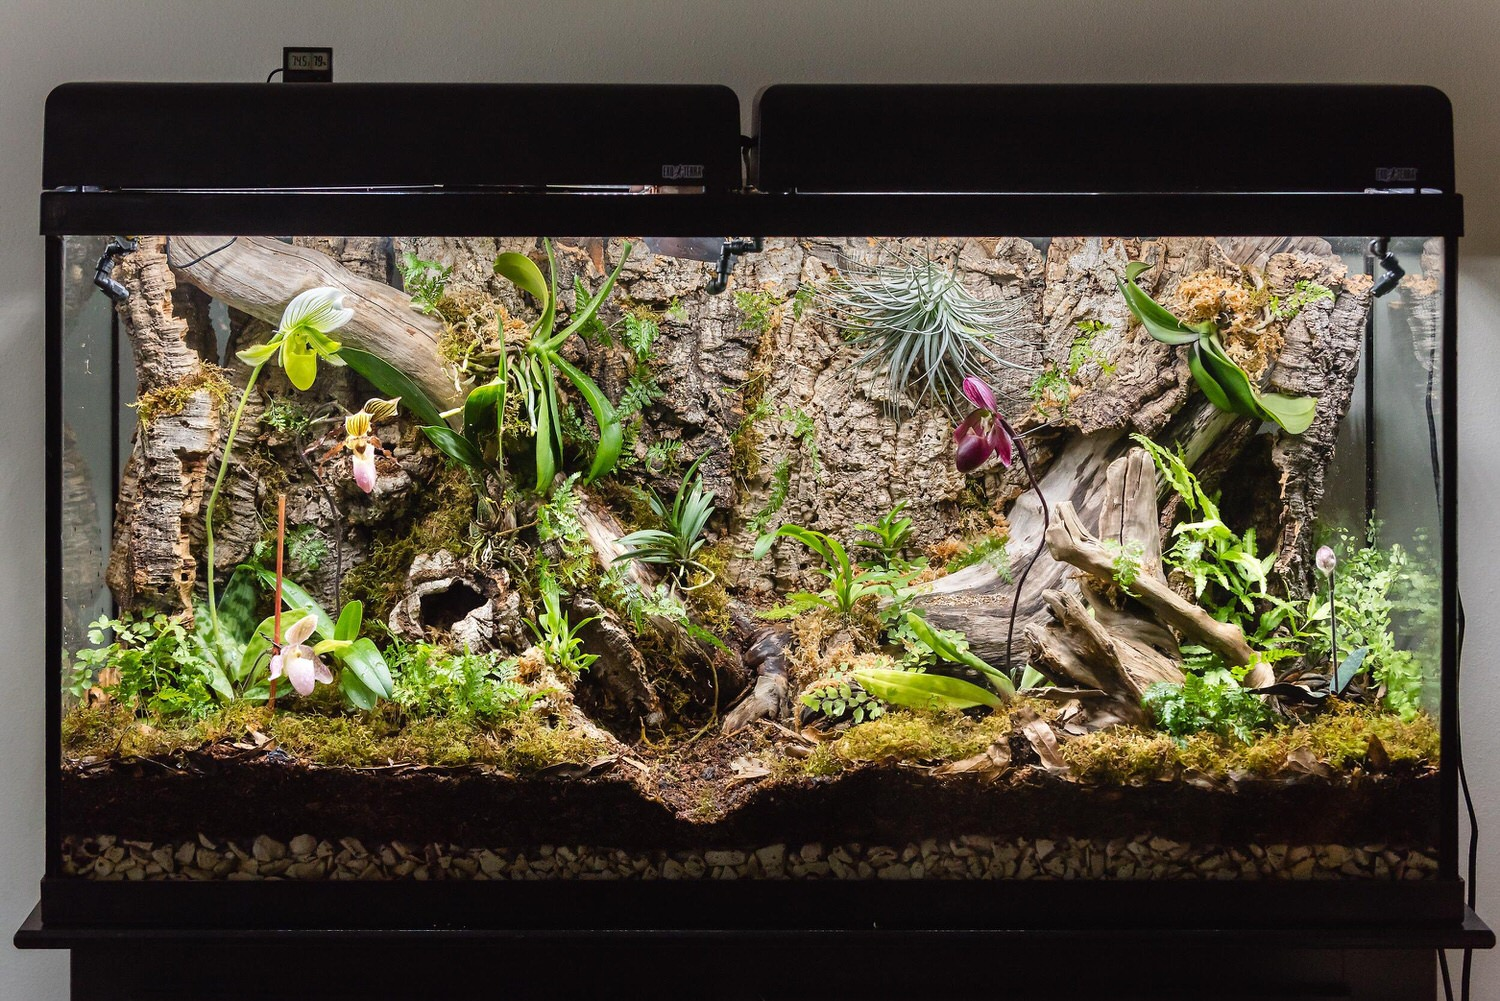 Initial build showing the Paphiopedilums in bloom.